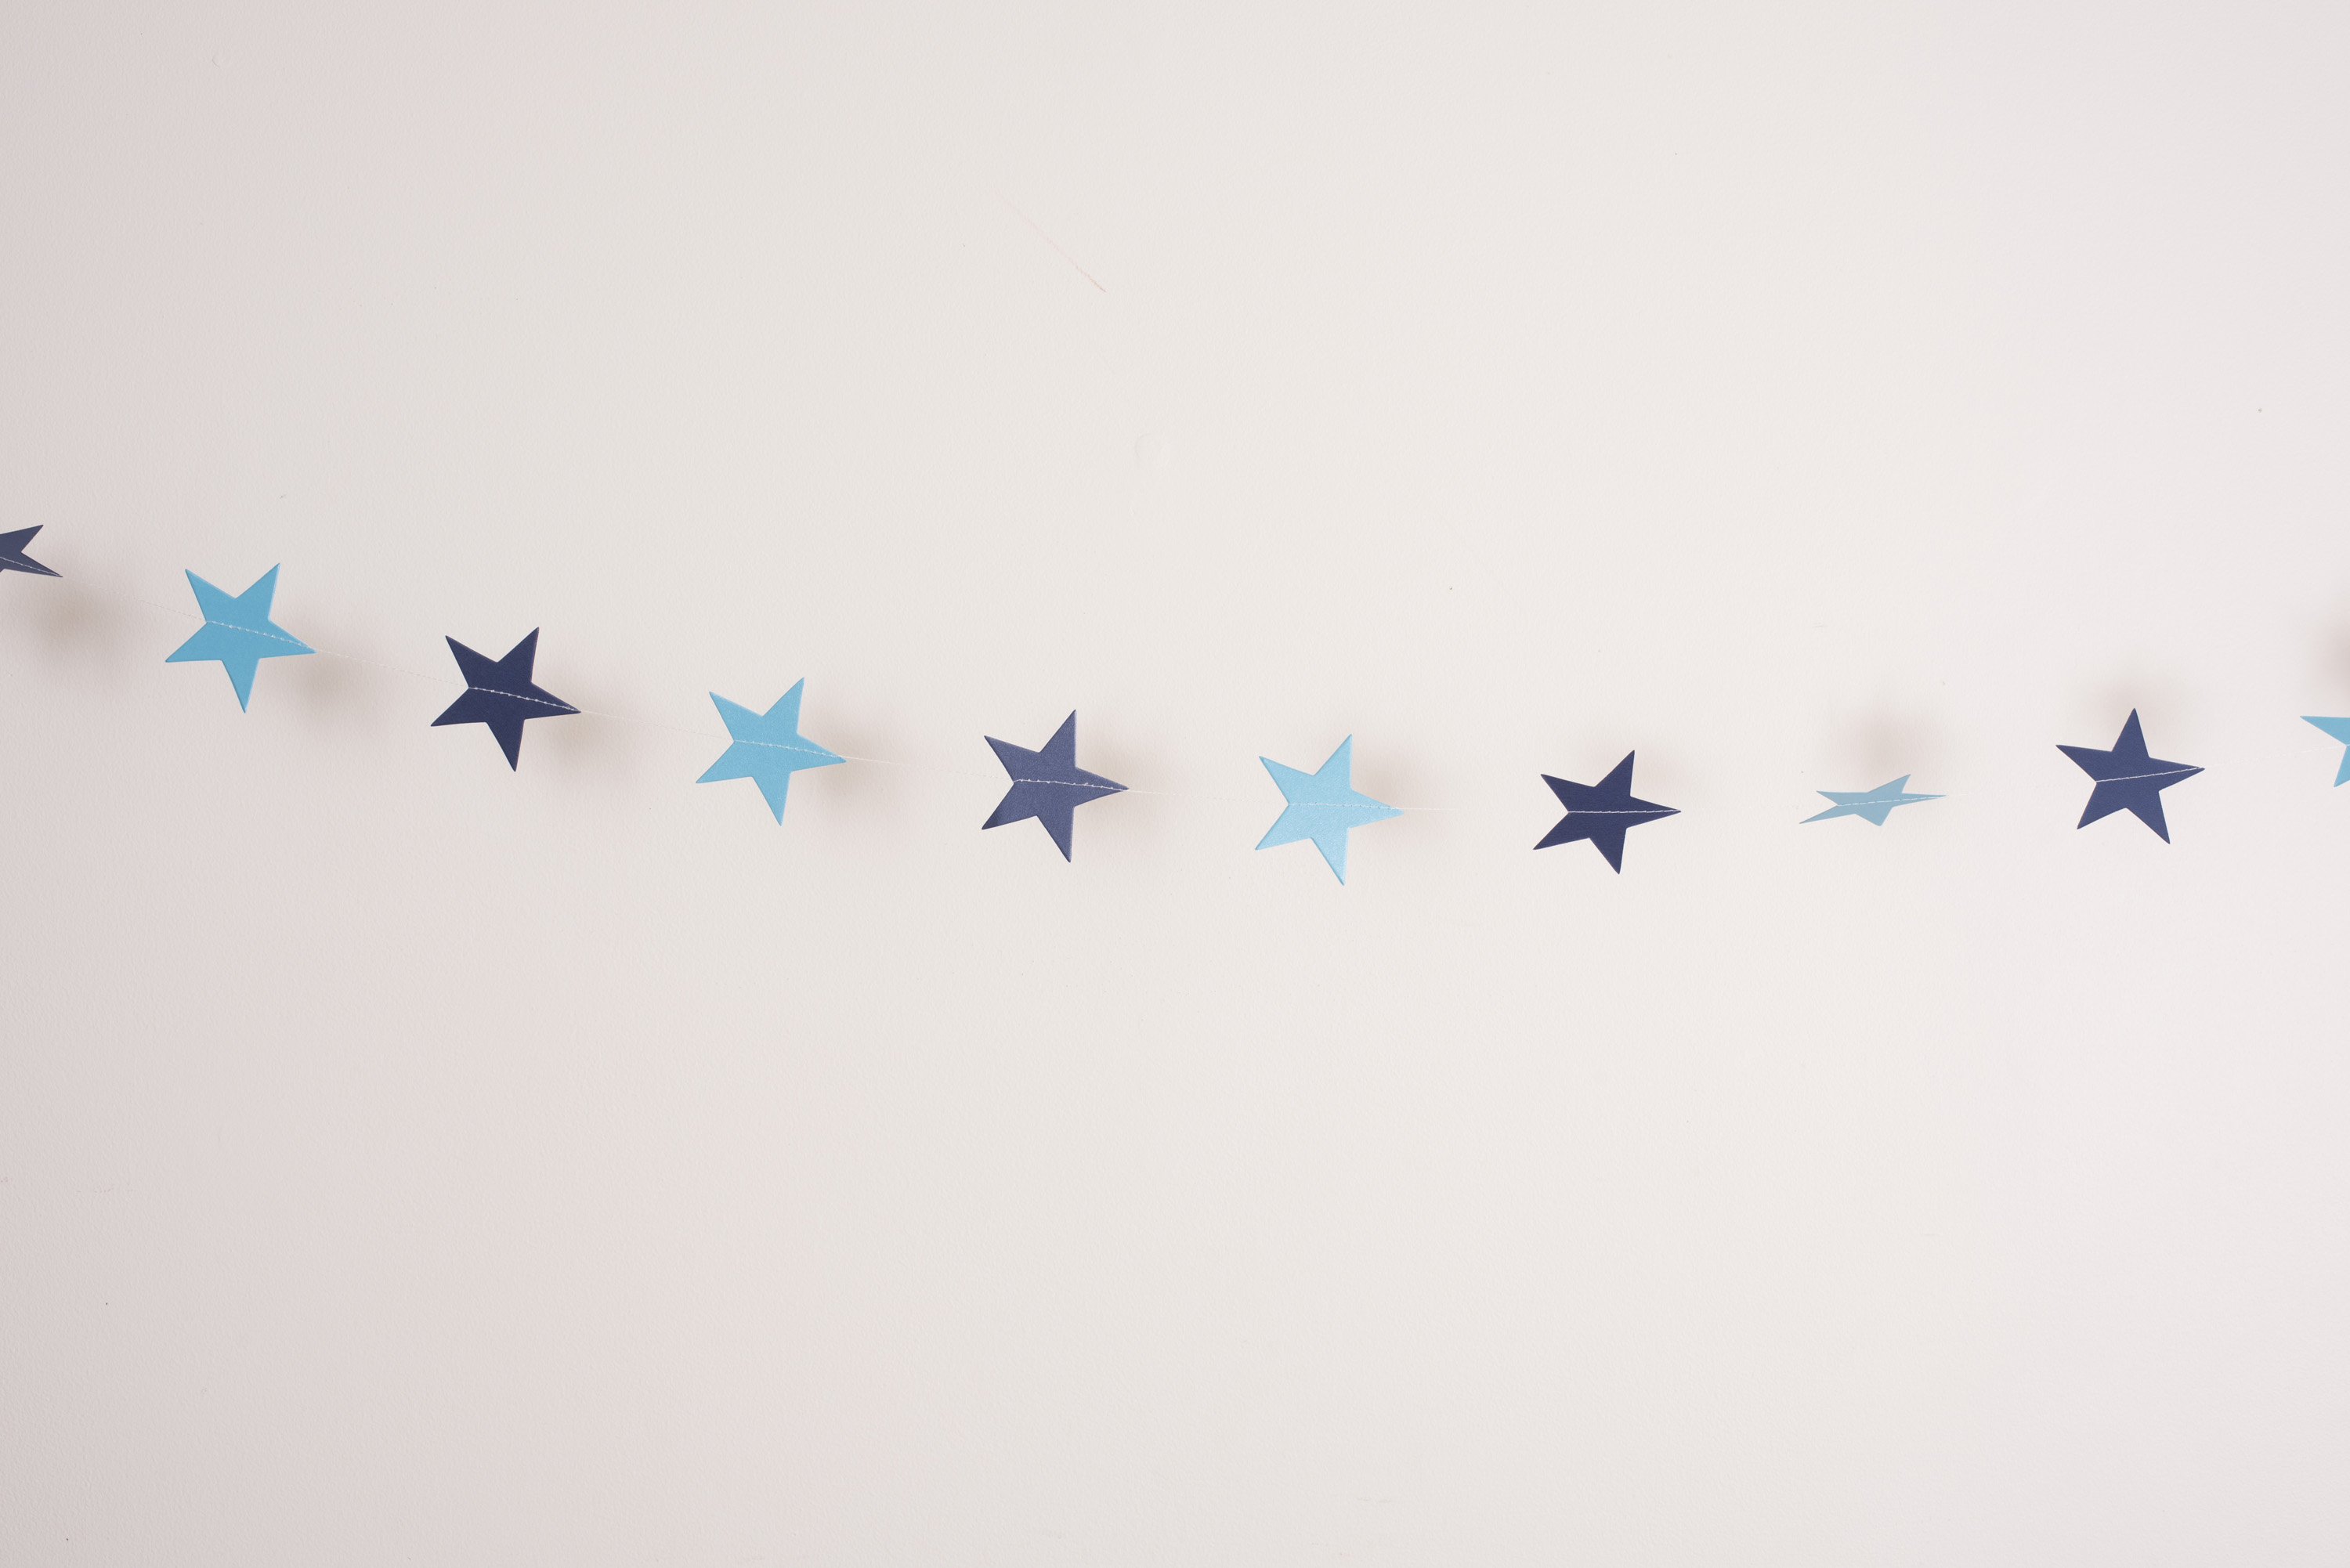 Delicate chain of small blue Christmas stars strung across a white background with copy space for your seasonal greeting